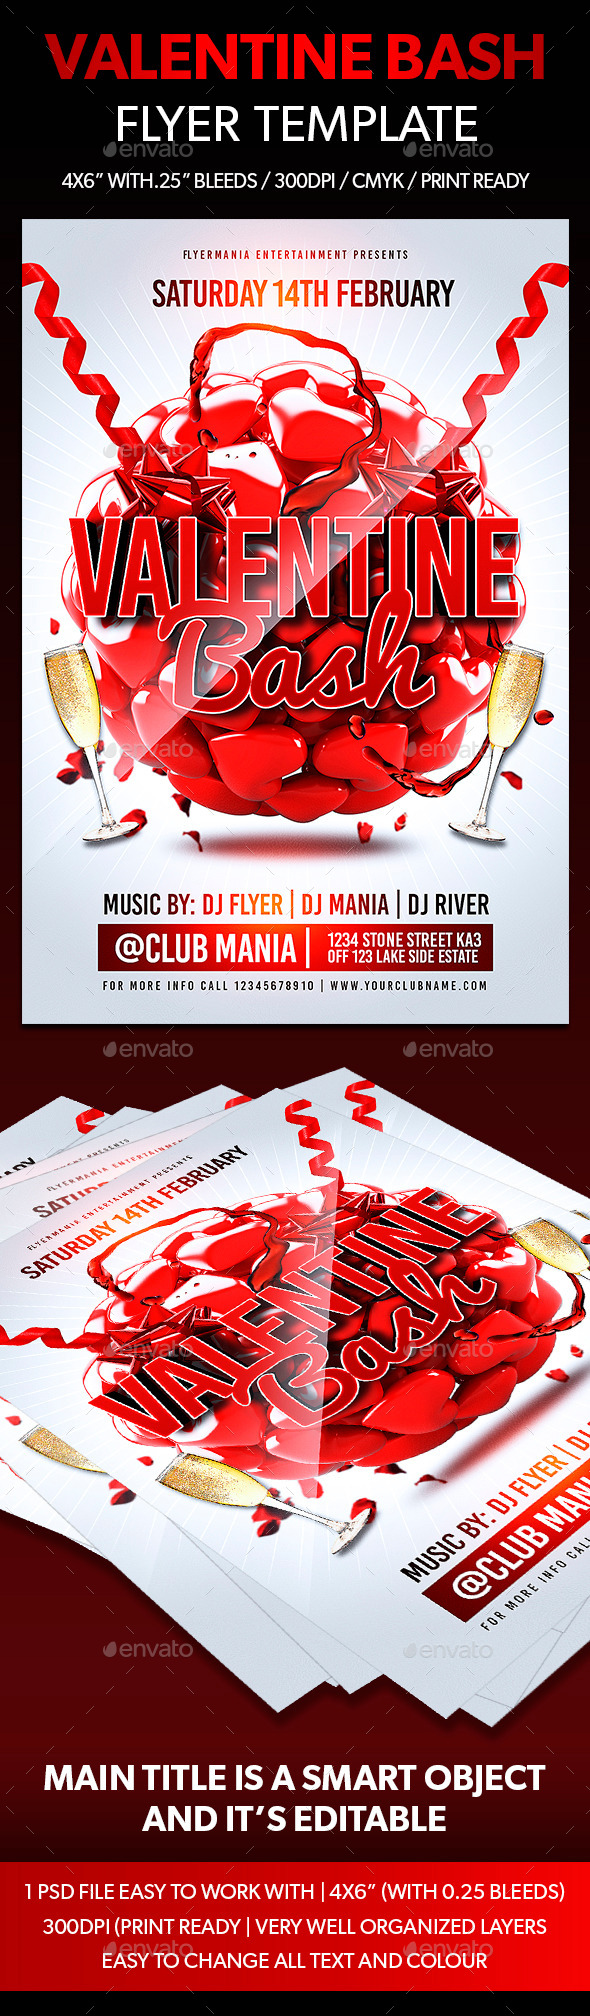 Valentine Bash Flyer Template  - Flyers Print Templates